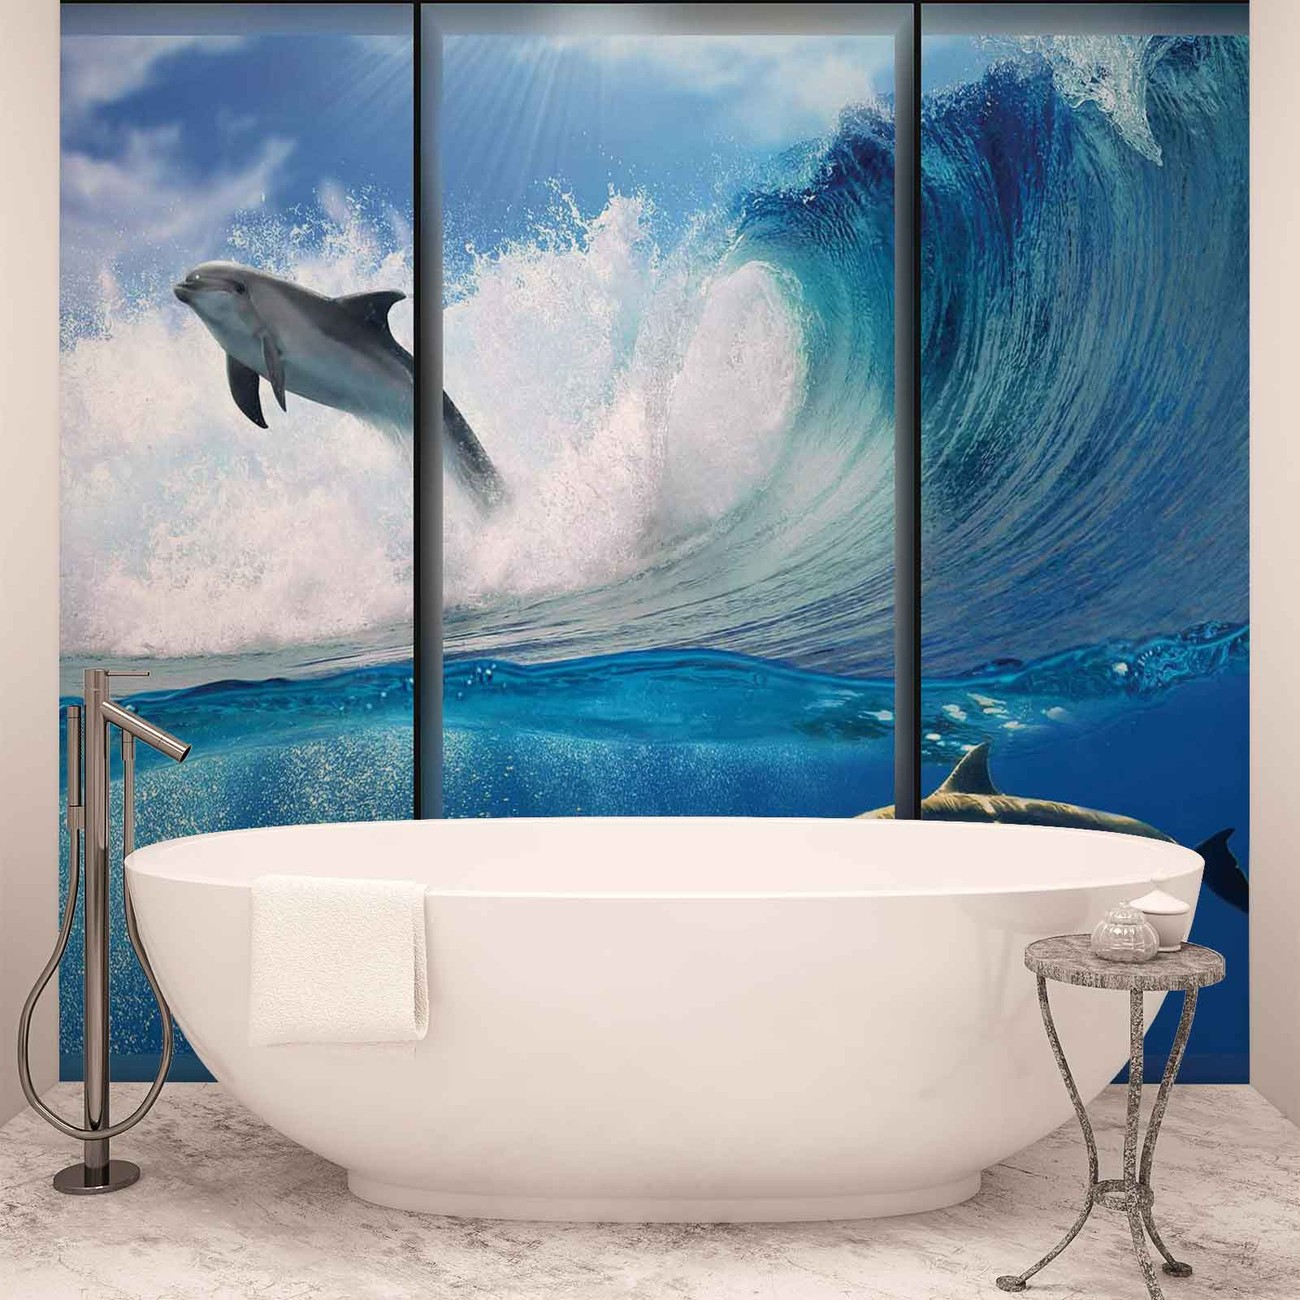 dauphins saut vagues mer poster mural papier peint acheter le sur. Black Bedroom Furniture Sets. Home Design Ideas